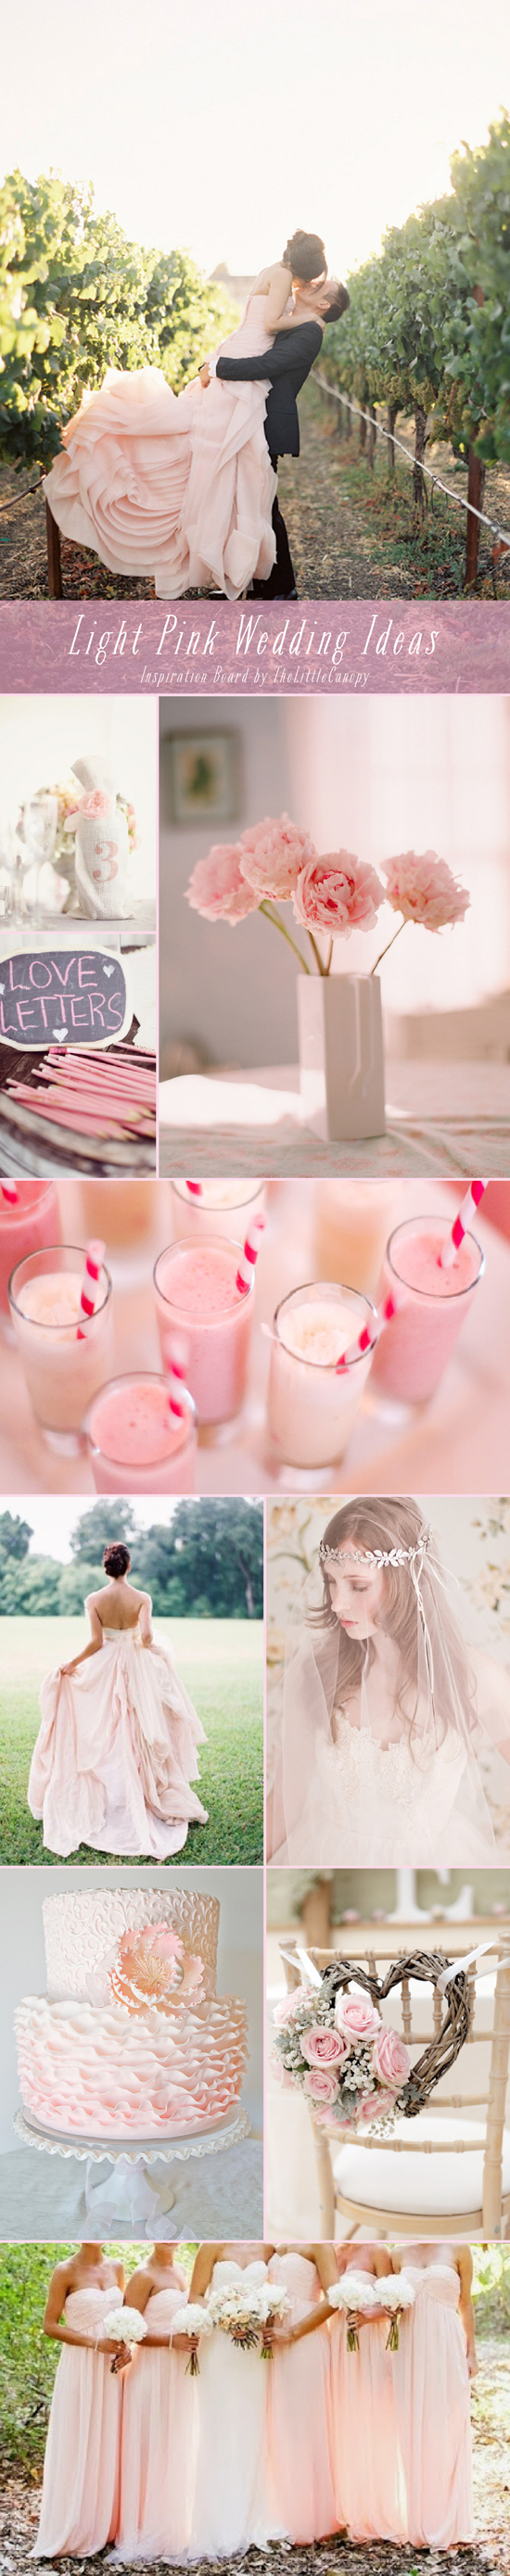 Inspiration Board: Light Pink Wedding Ideas // You can make a big impact with a subtle color! This week's board encourages wedding ideas using light and pale pink tones. Enjoy!